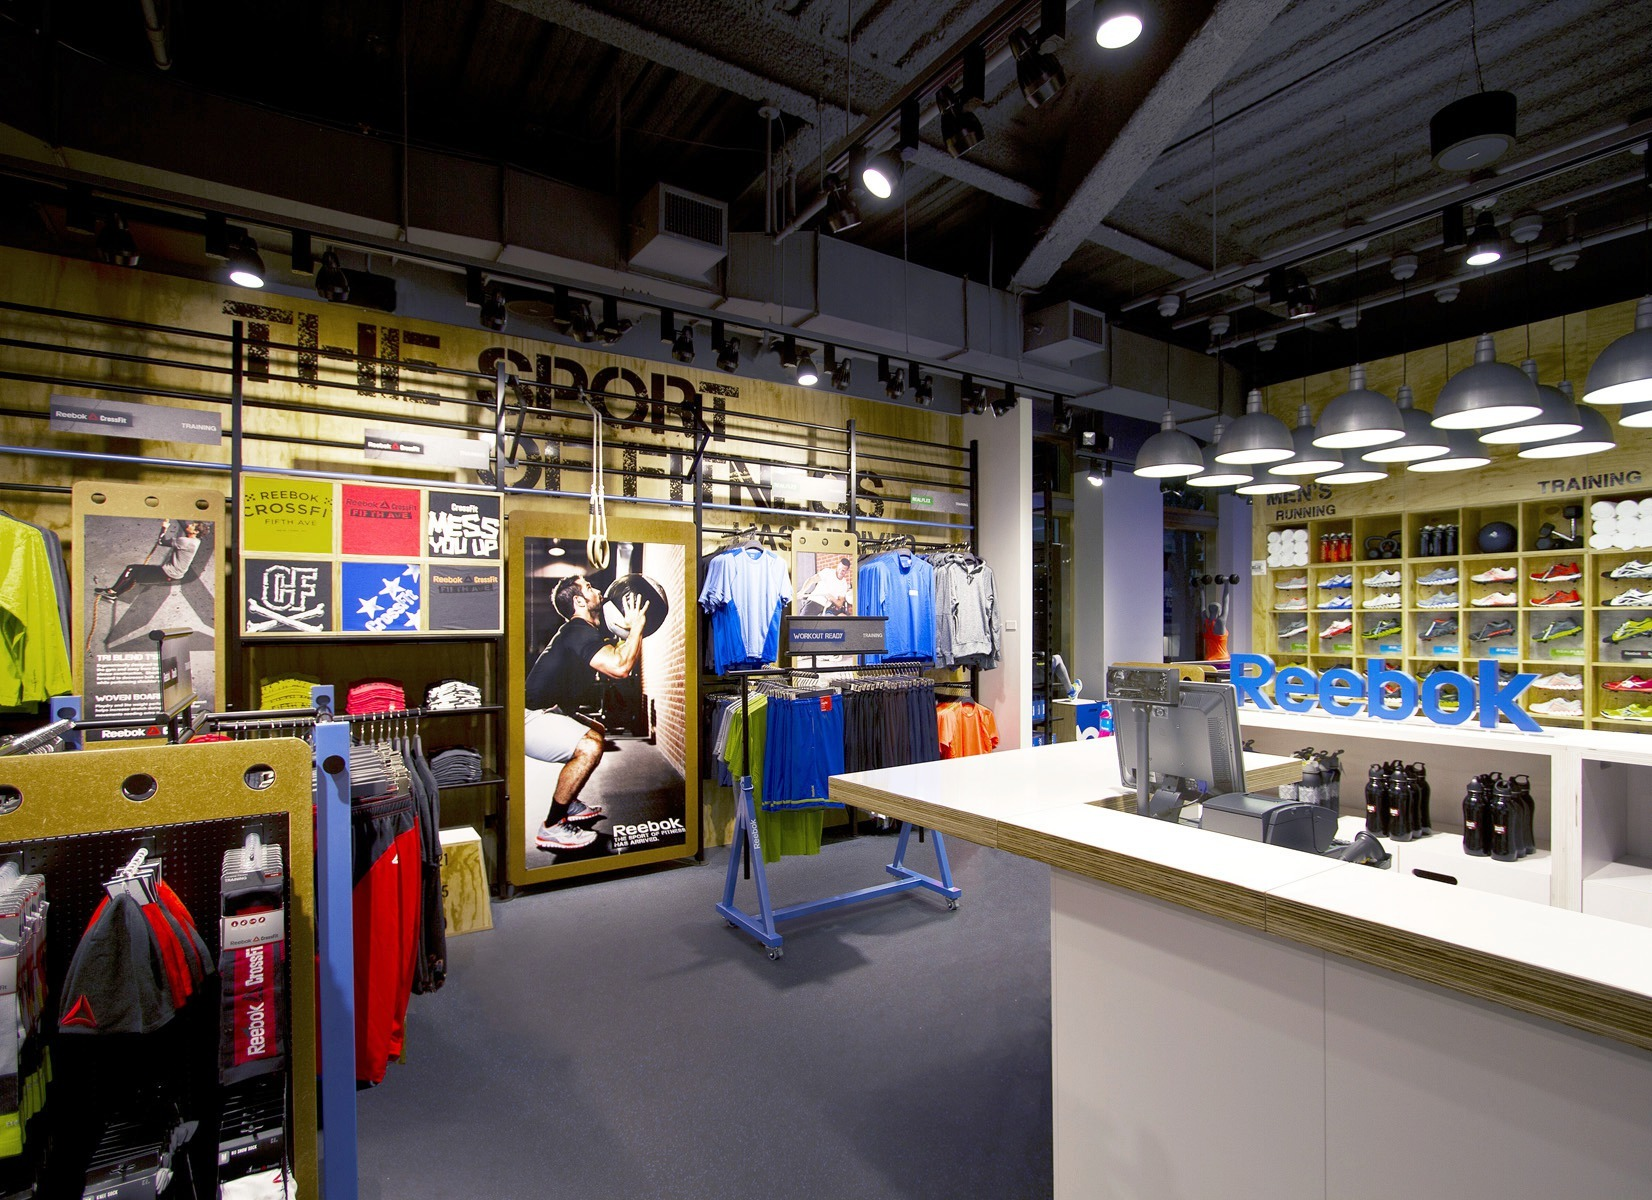 reebok fit hub store crossfit gym opens in new york city interior design shops nyc LSN : Big Ideas : Retail Analysis: Reeboku0027s Fit Hub, a CrossFit gym and  store hybrid